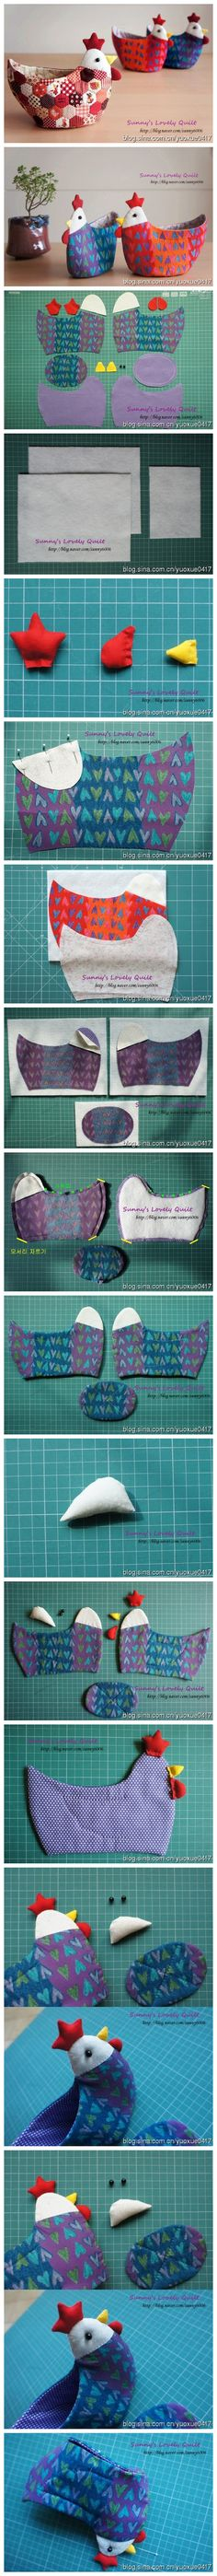 Tutorial on how to make a chicken-shaped patchwork bowl Sewing Hacks, Sewing Tutorials, Sewing Patterns, Online Tutorials, Fabric Crafts, Sewing Crafts, Sewing Projects, Diy Projects, Diy Crafts